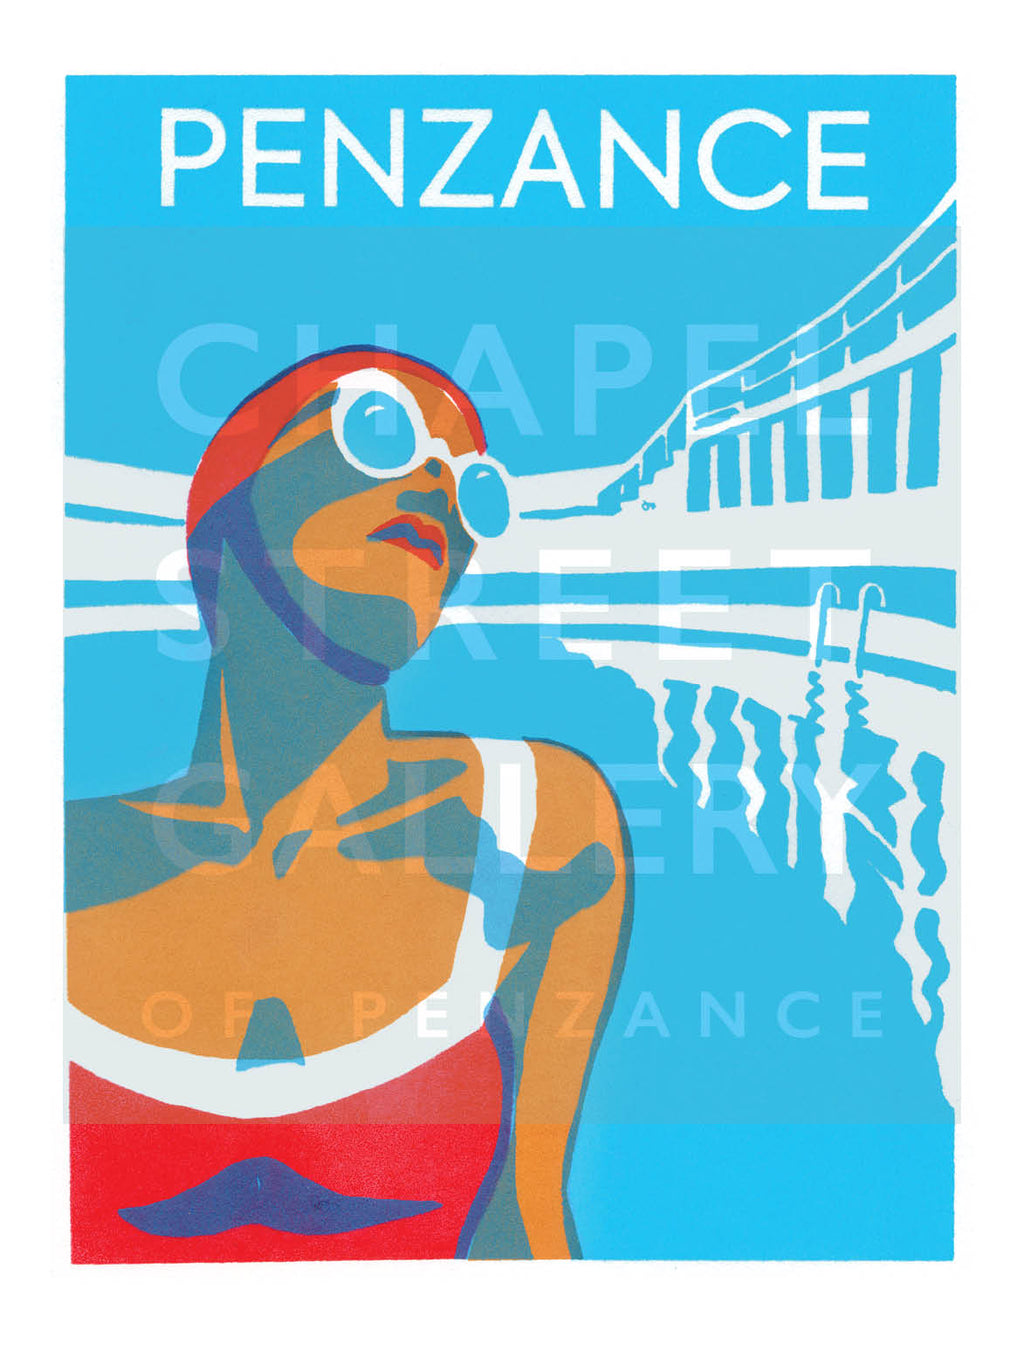 'Lido Glamour 1 Penzance' Signed Sarah Bell A1 Giclee Print